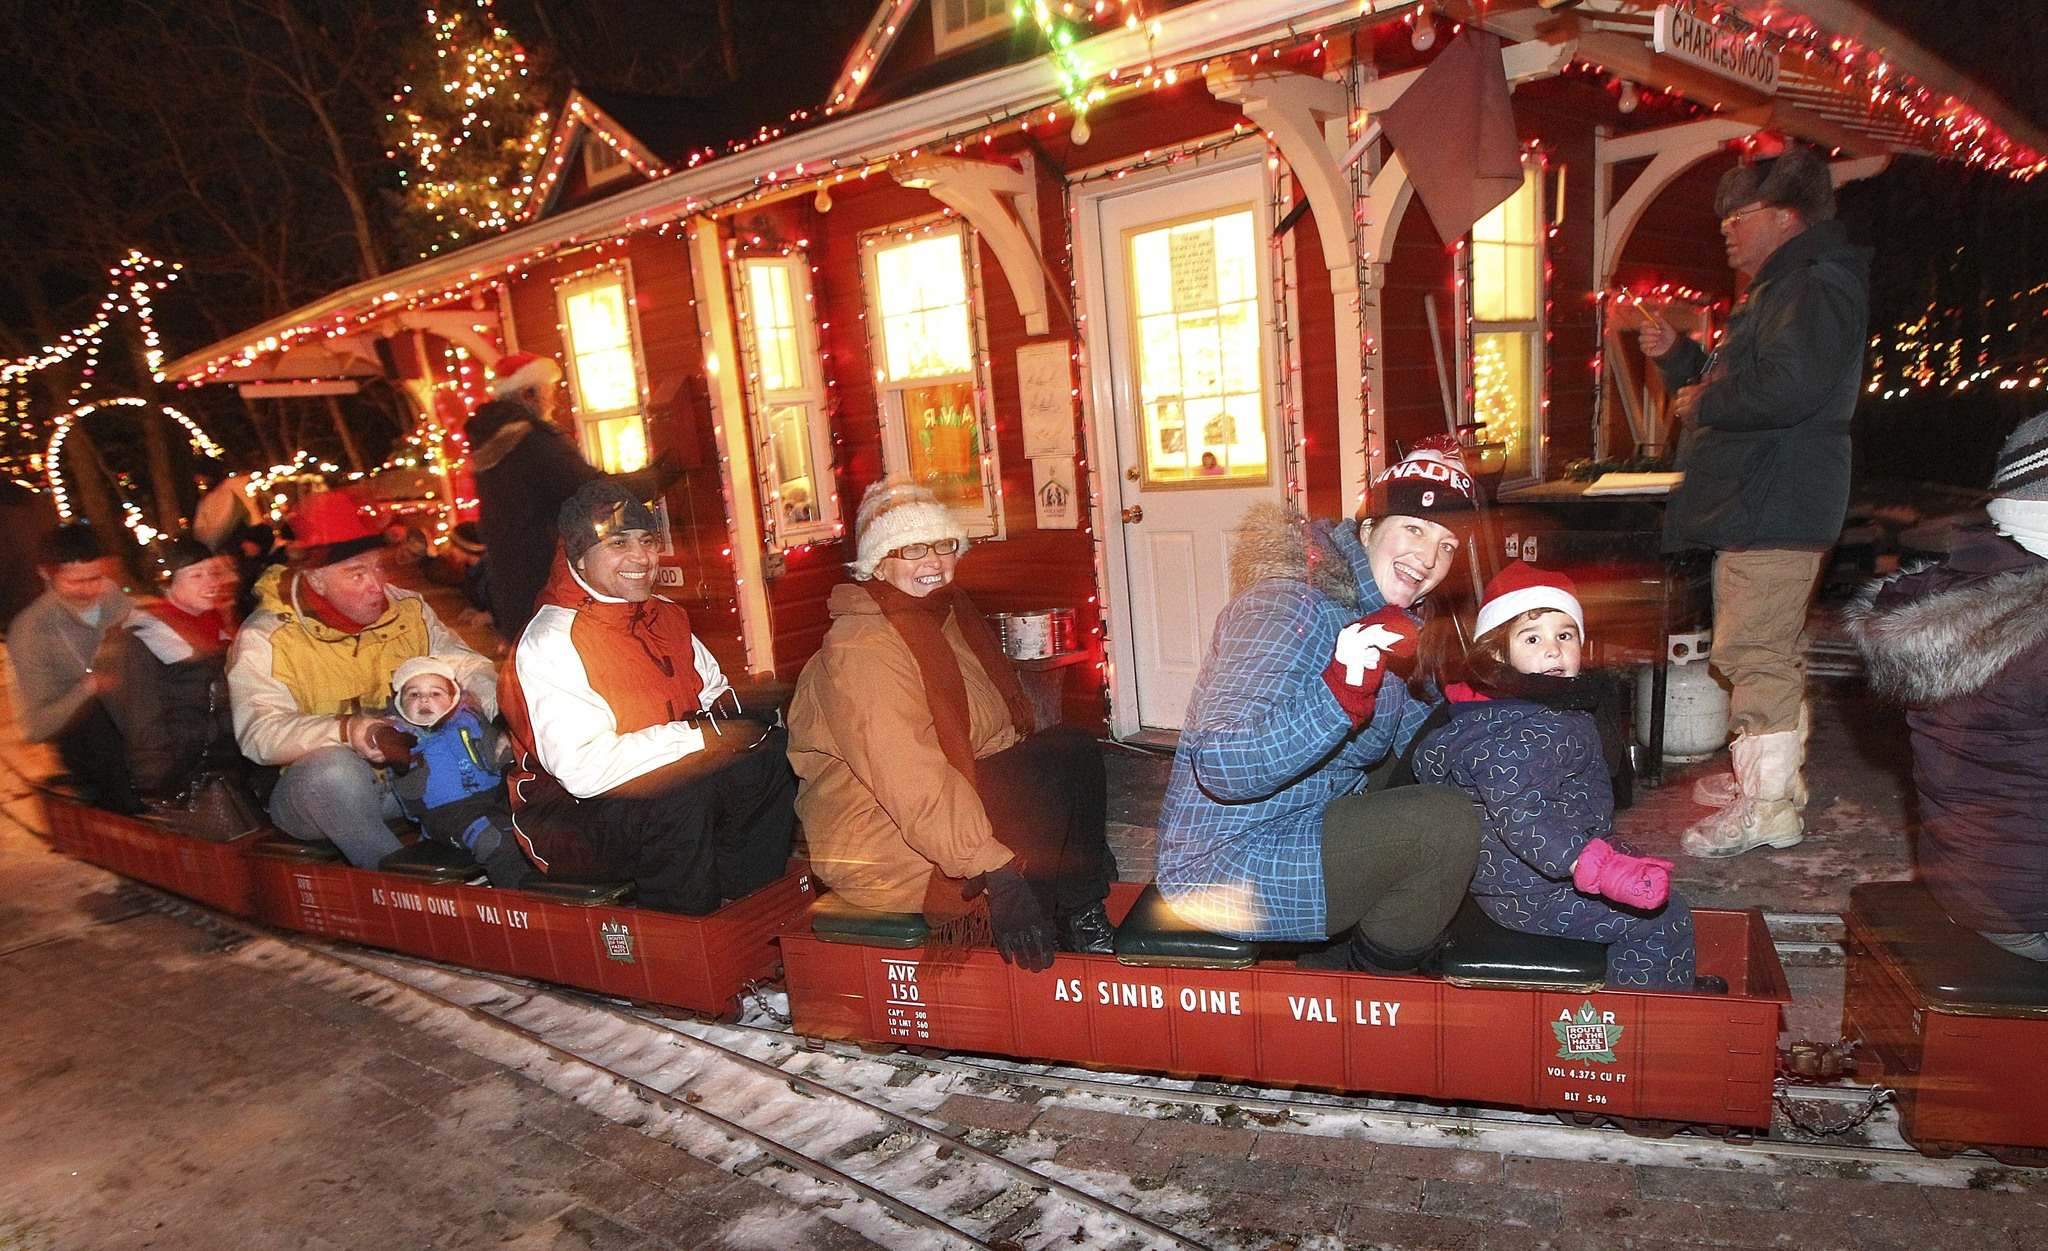 The Assiniboine Valley Railway Christmas train stopped running following the death of property owner Bill Taylor. All the Christmas decorations used in the annual display were destroyed after a shed they were stored in burned down earlier this week. (Ruth Bonneville / Winnipeg Free Press files)</p>